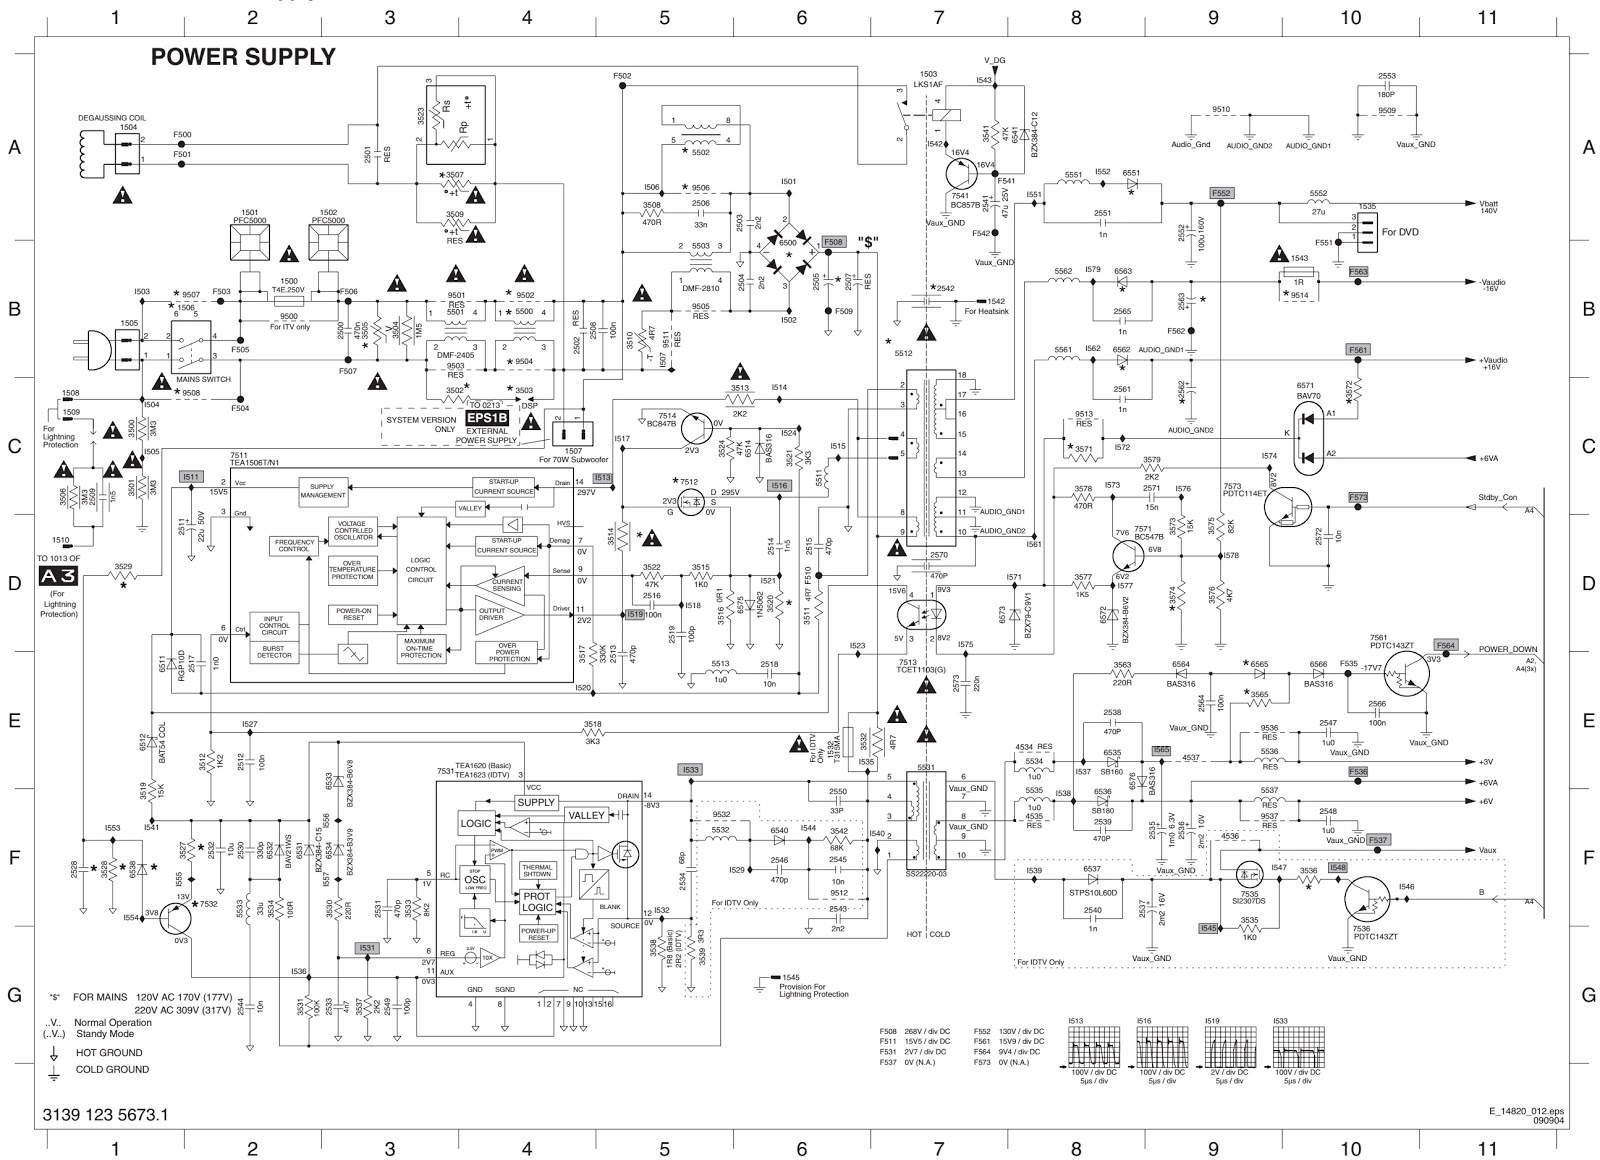 philips 25ht3312-93r  u2013 tv-dvd combo  u2013 smps circuit diagram and working principle